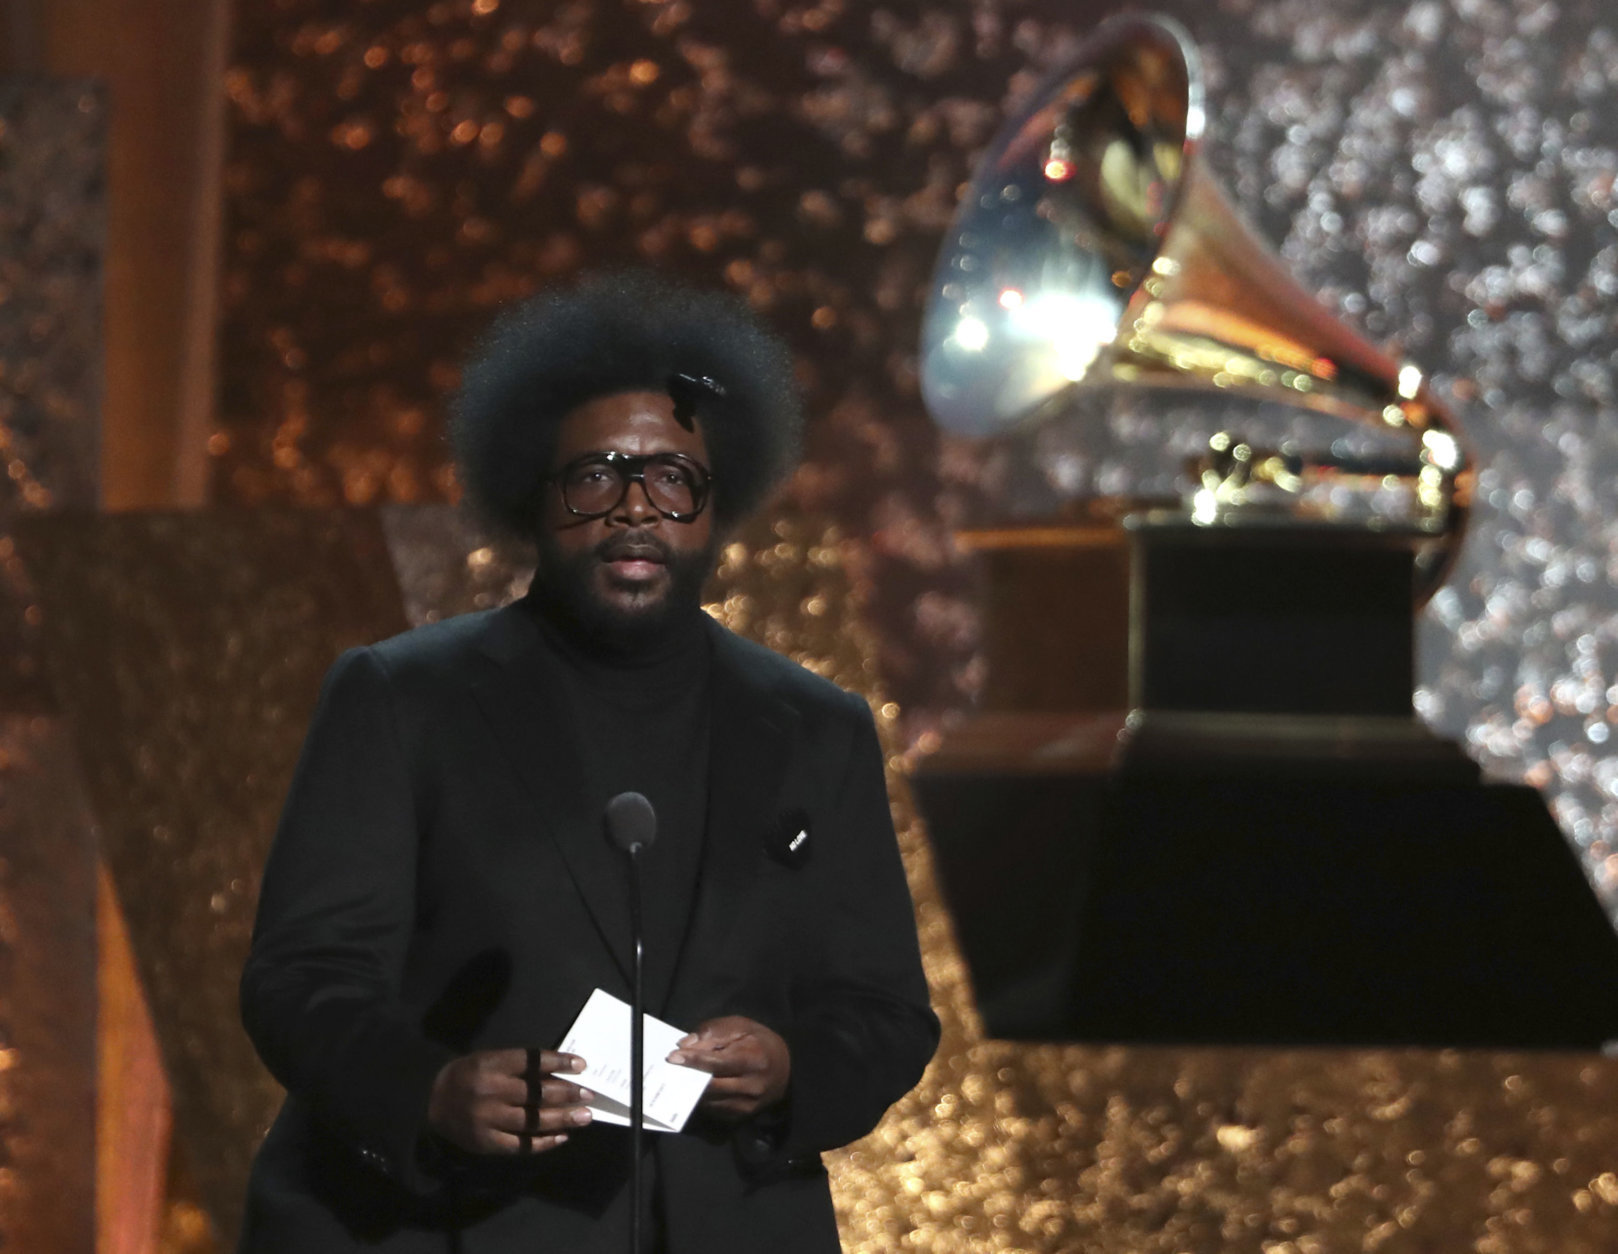 Questlove presents an award at the 61st annual Grammy Awards on Sunday, Feb. 10, 2019, in Los Angeles. (Photo by Matt Sayles/Invision/AP)